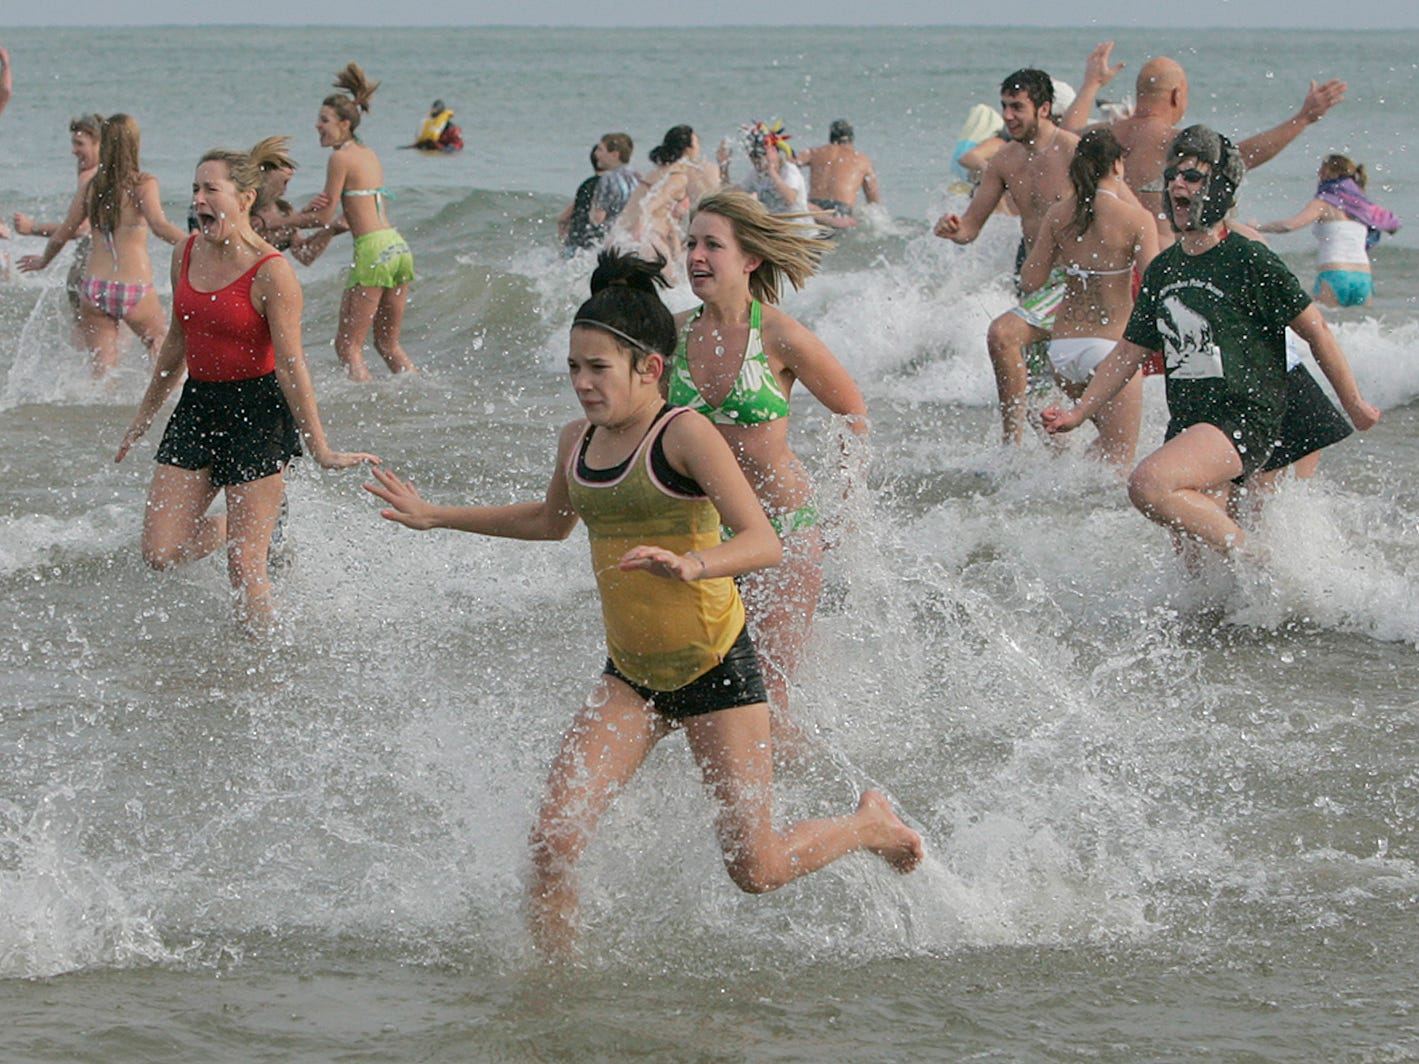 A wave of participants races back to shore during the annual Polar Bear Plunge at Bradford Beach on Jan. 2, 2008.